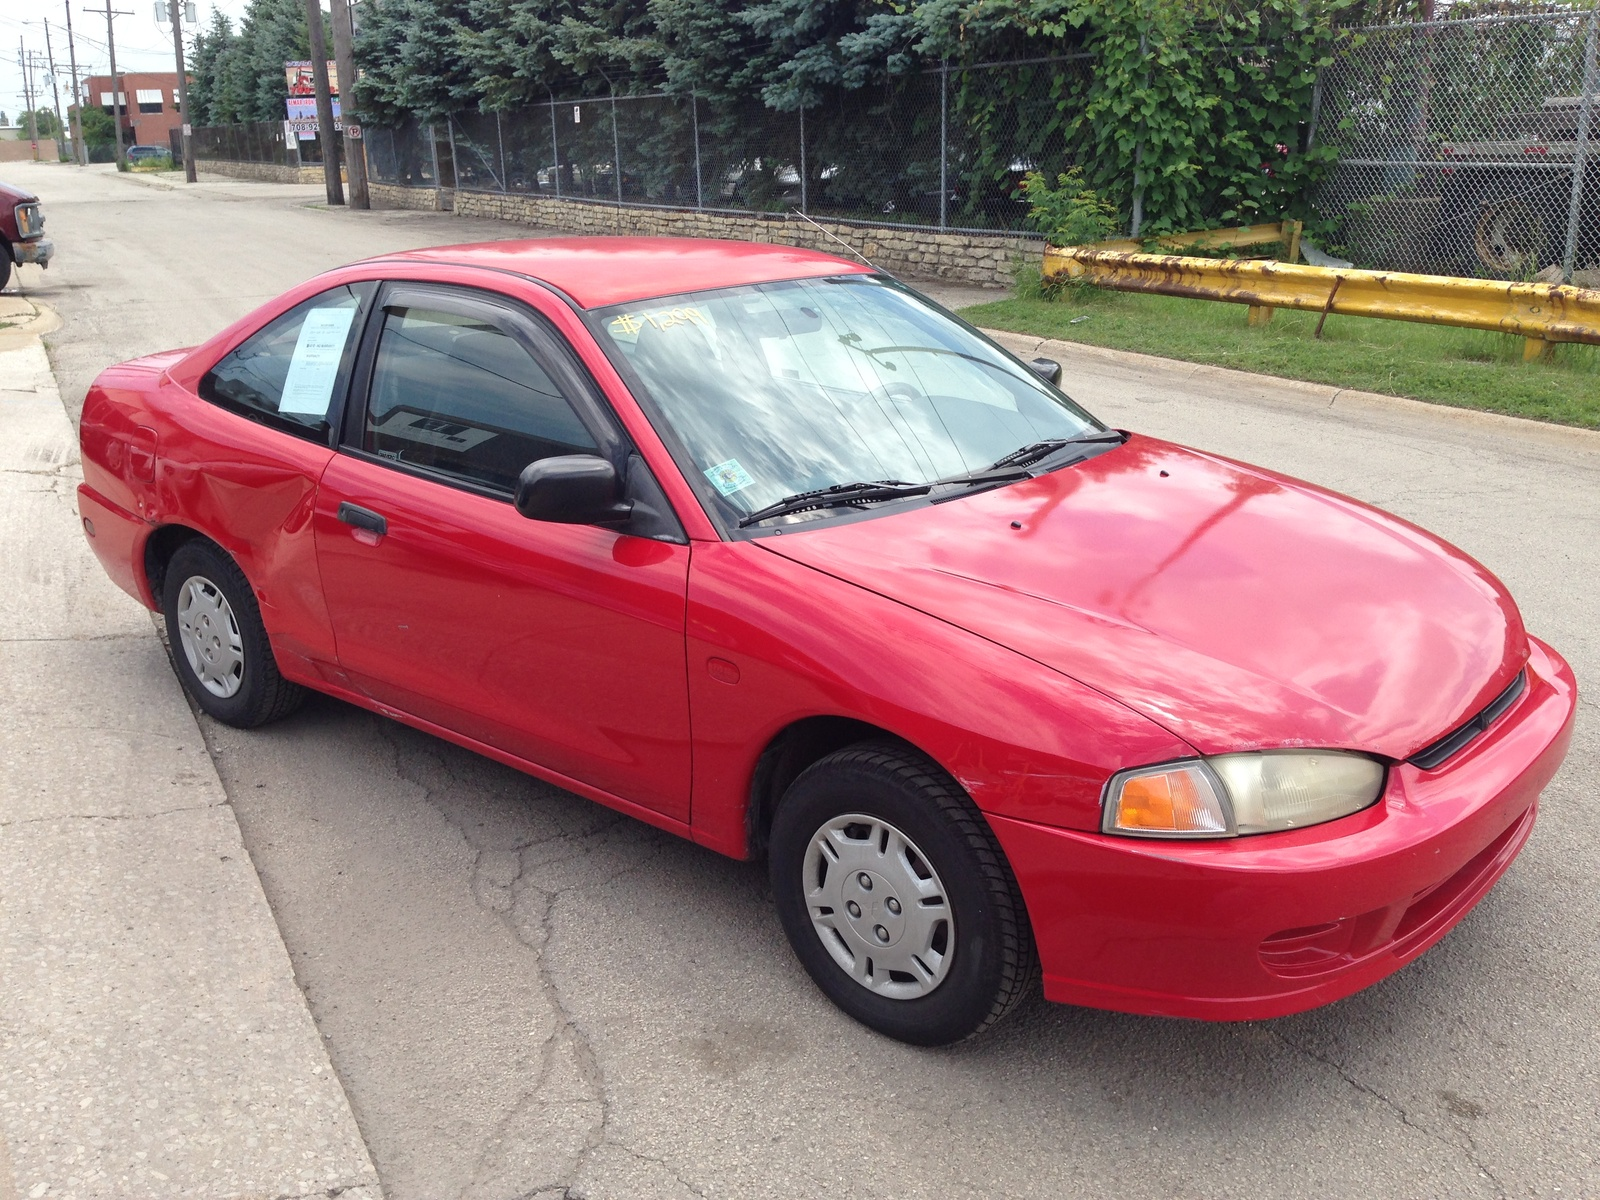 1999 Mitsubishi Mirage DE Coupe picture